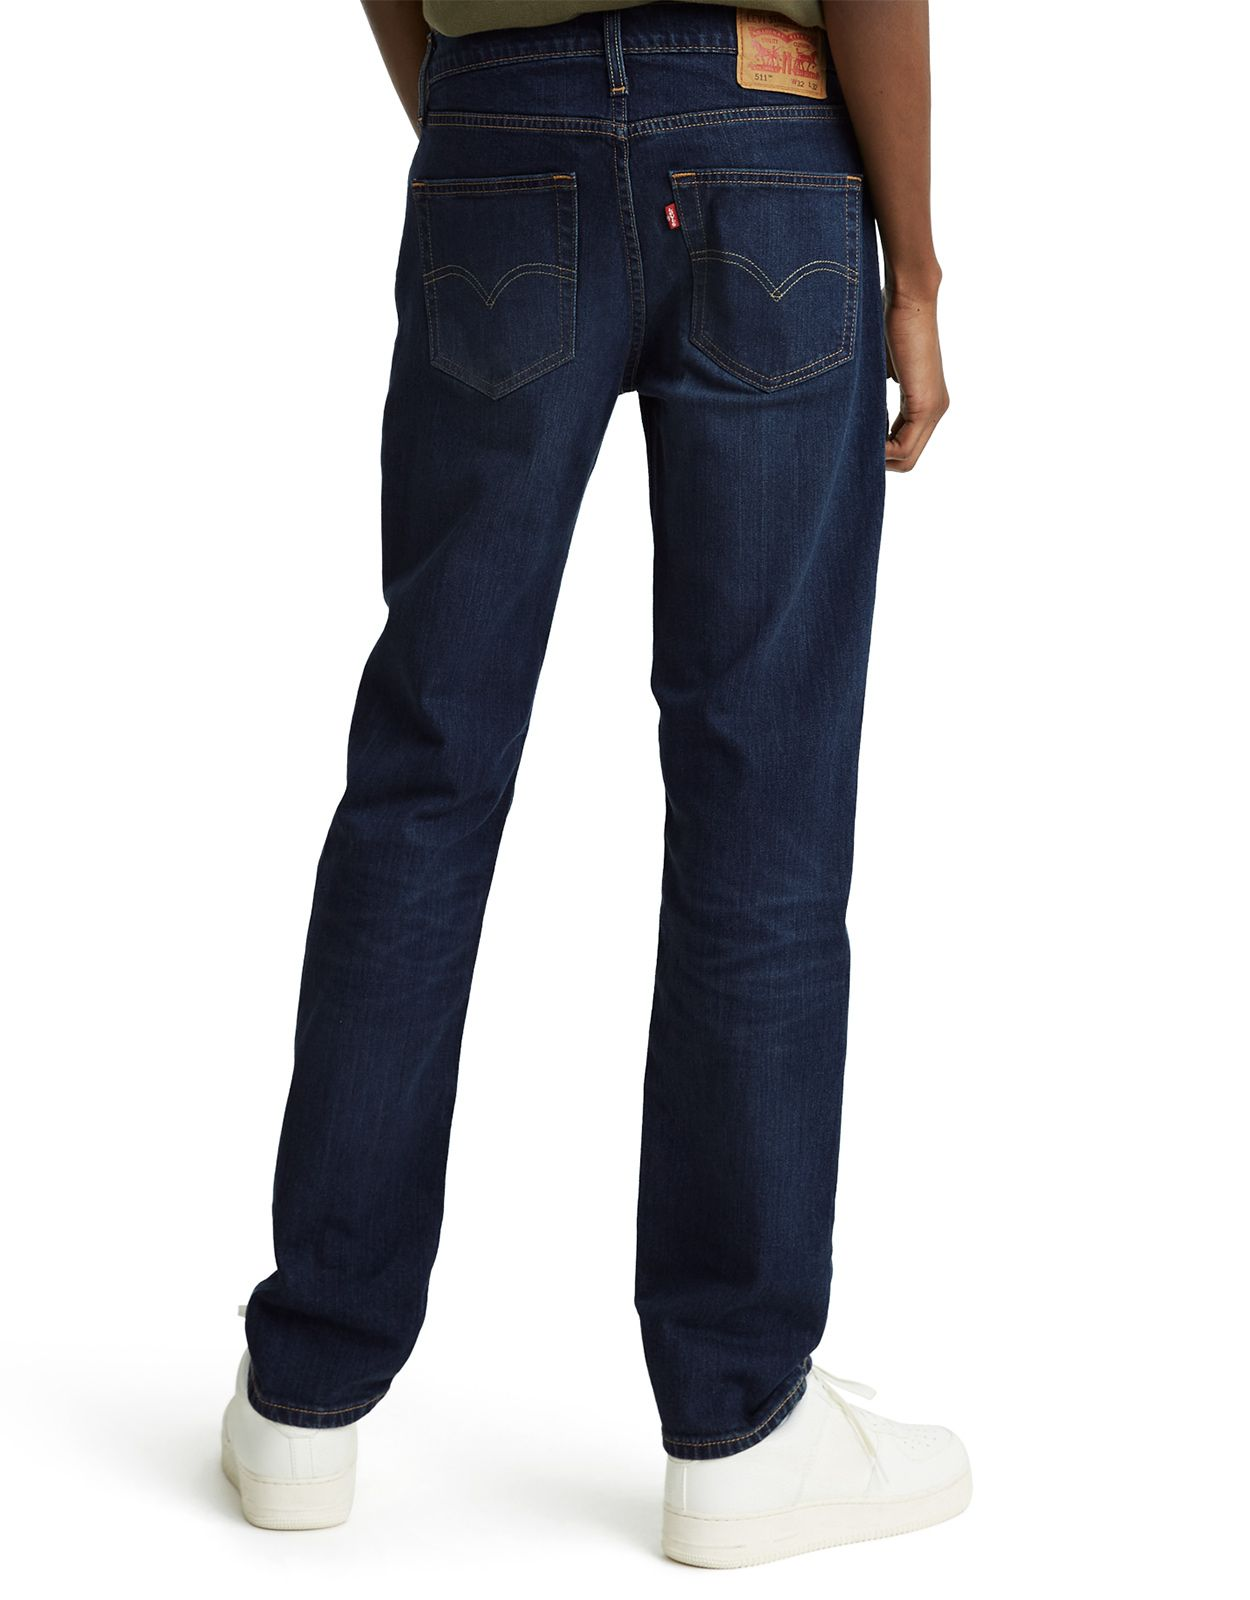 Levi's Men's 531 Stretch Mid Rise Athletic Slim Fit Tapered Leg Jeans - Myers Crescent